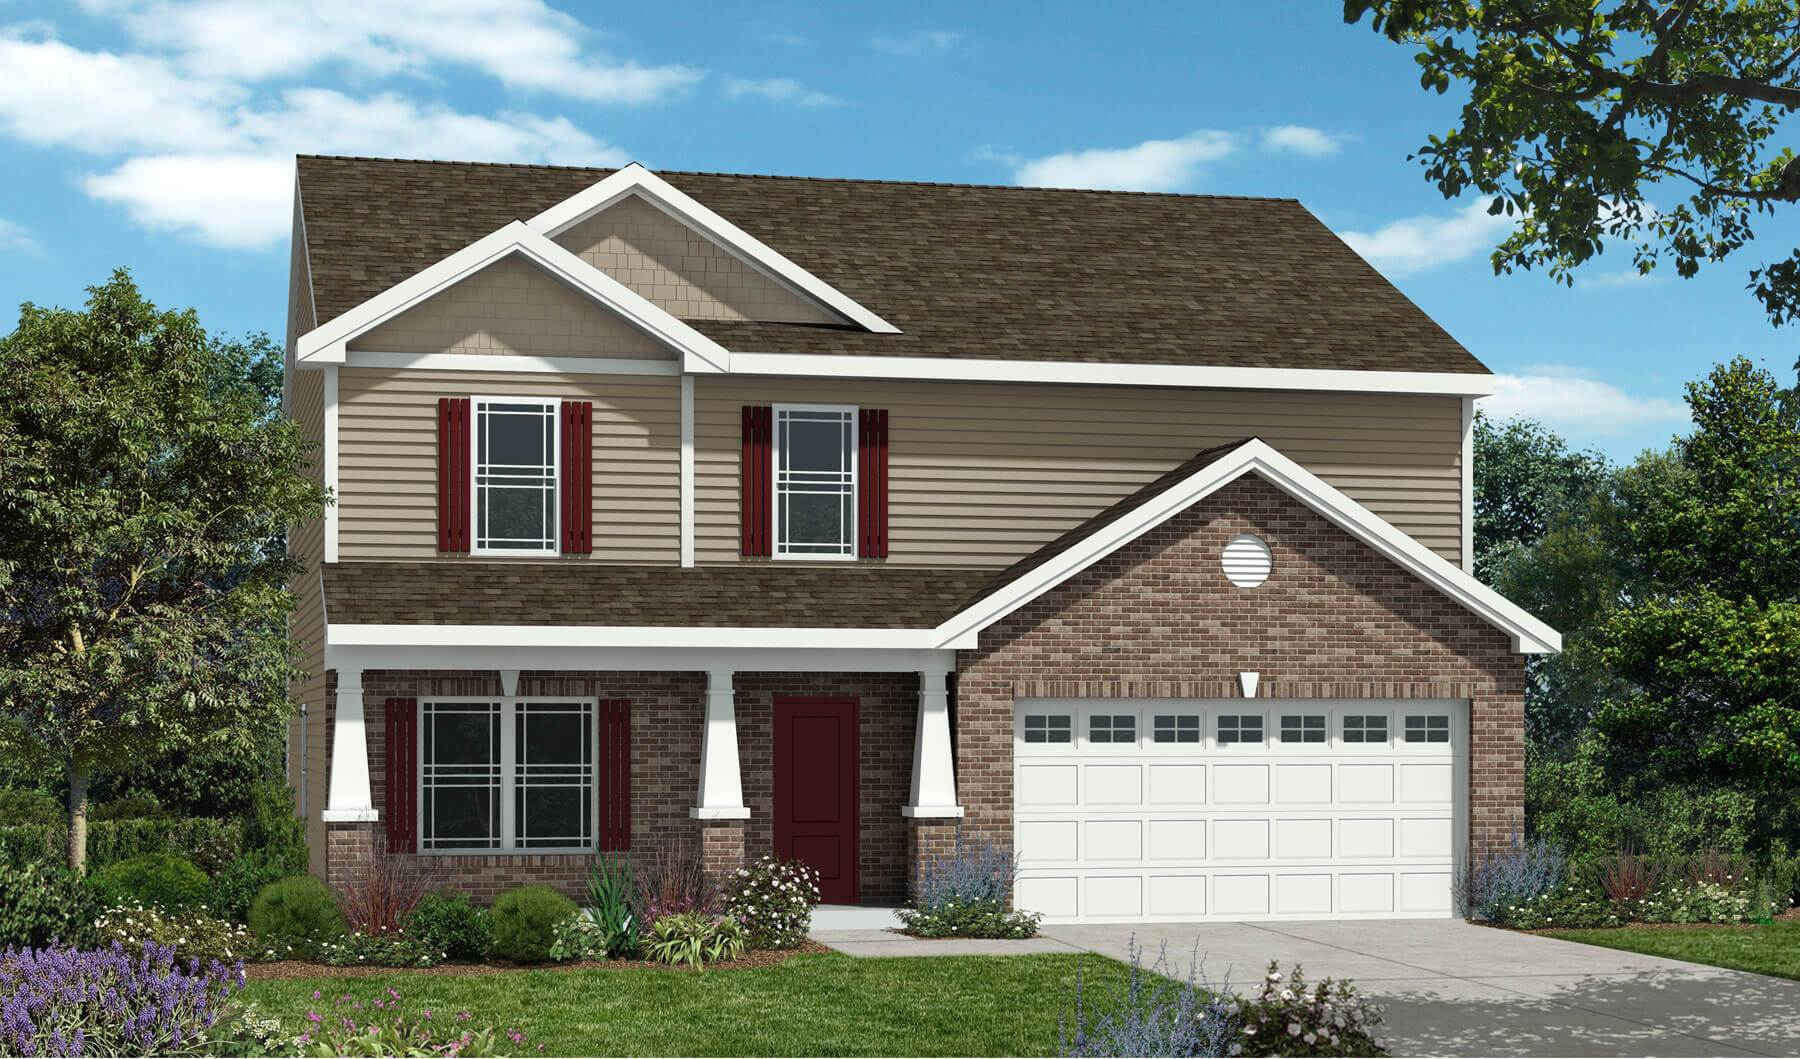 Westport homes of indianapolis sawmill montgomery for Houses for sale westport